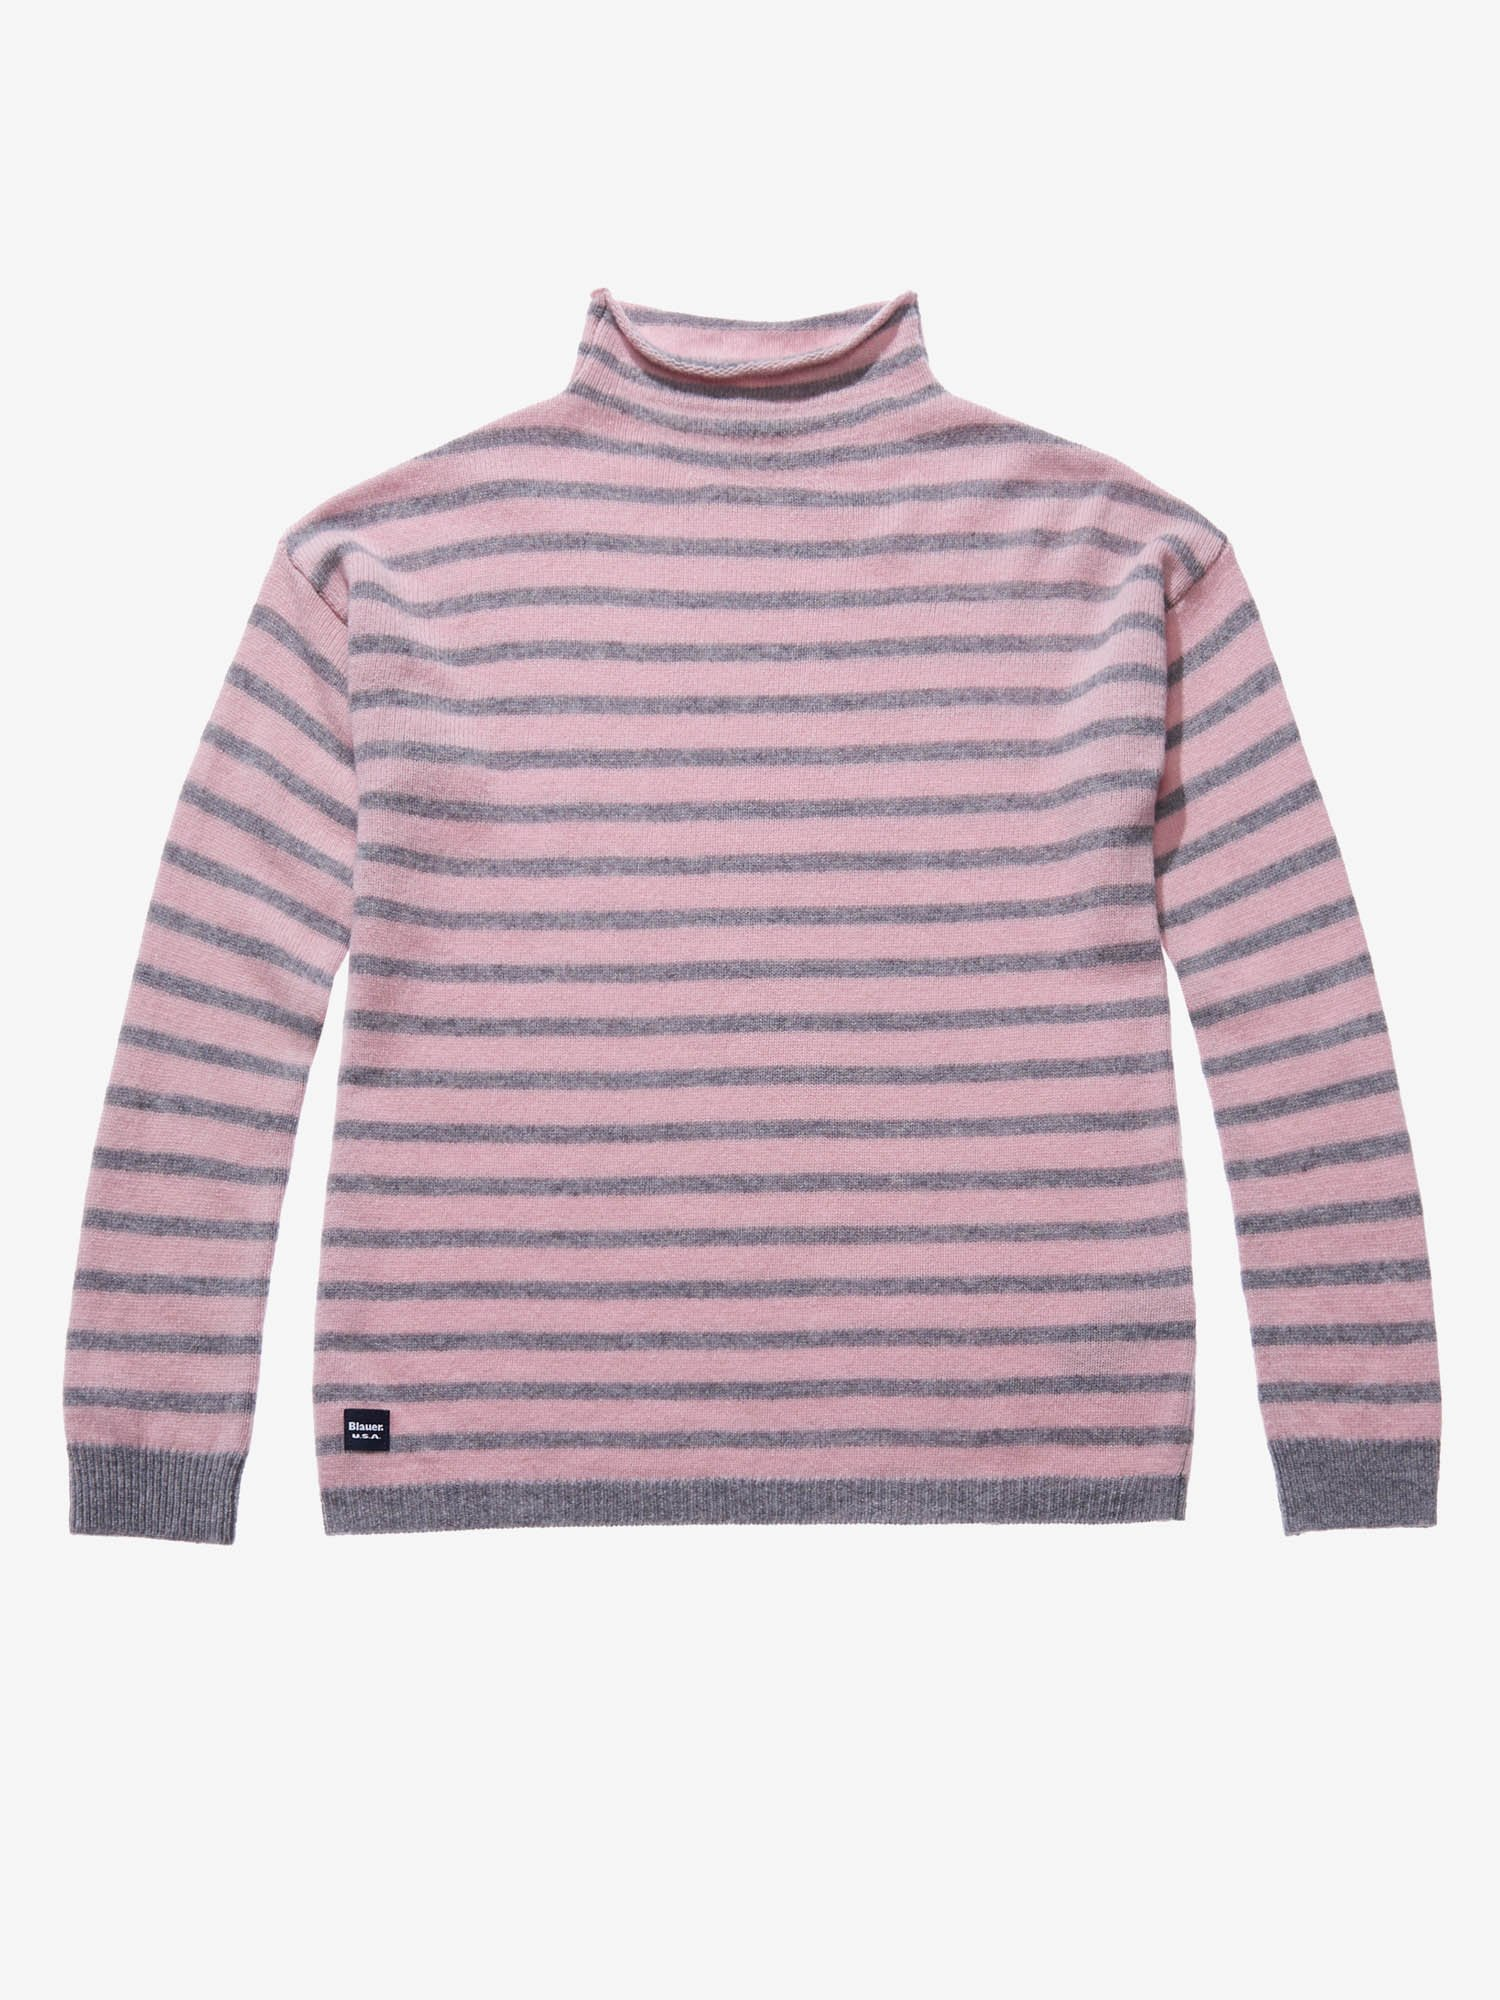 STRIPED WOOL AND CASHMERE TURTLENECK - Blauer